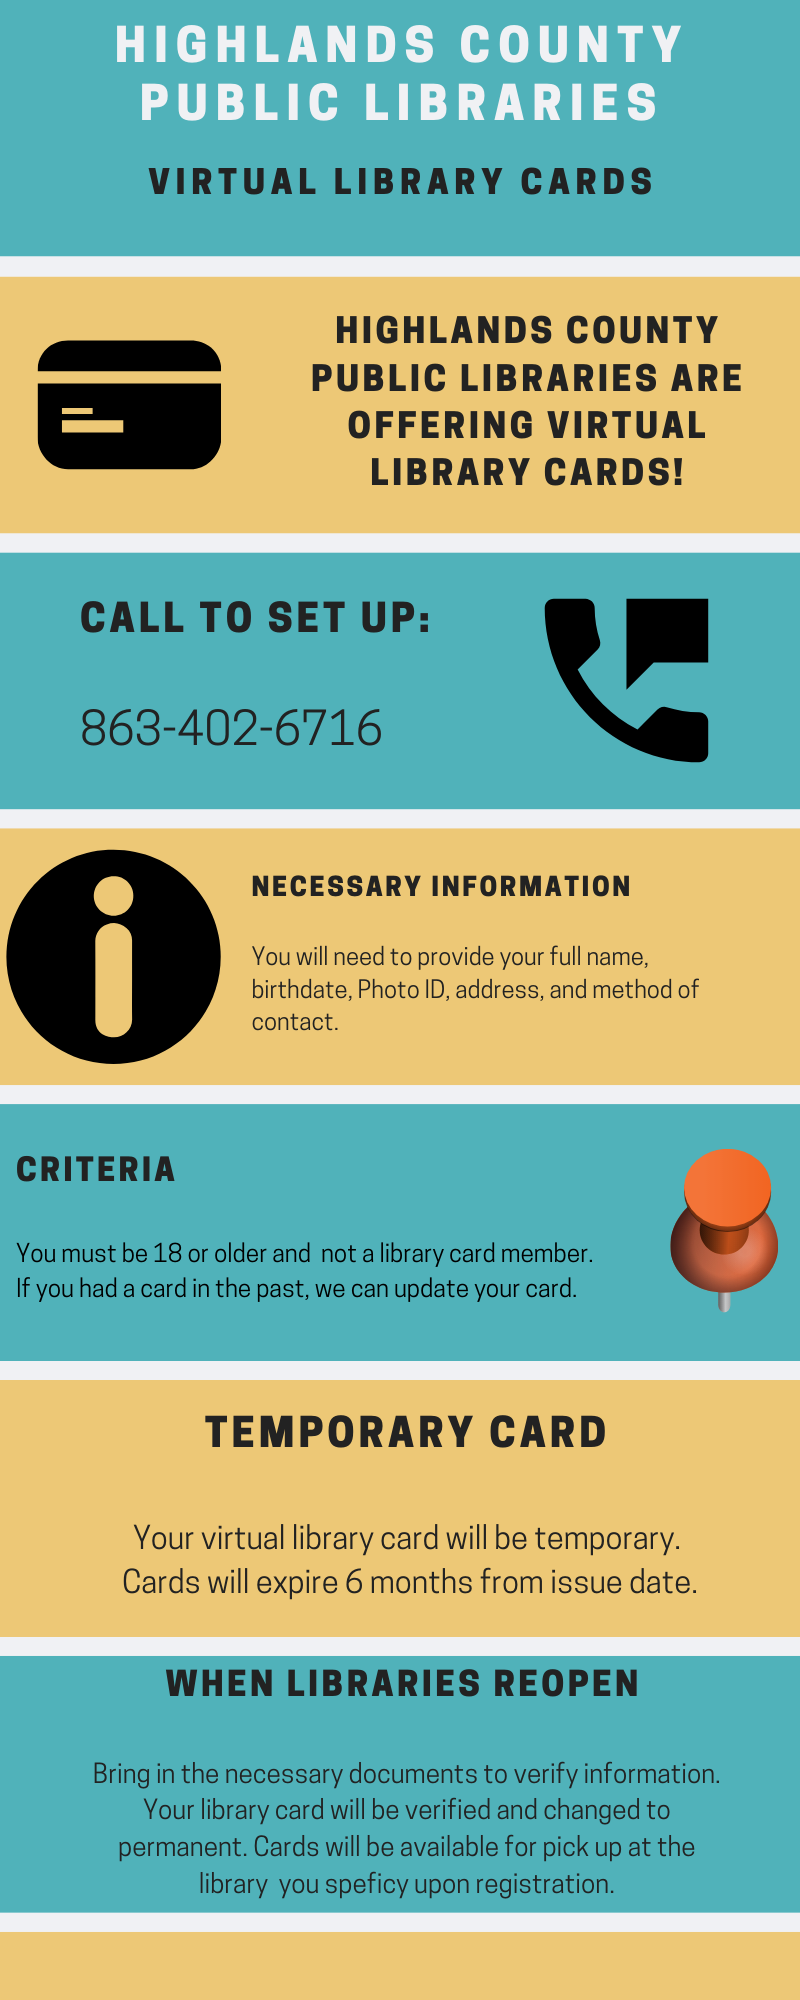 Highlands County Library System is now offering virtual library cards. You must be 18 or older and a first time card member. Call 863-402-6716 and supply your full name, photo ID, address, and contact information. These temporary cards will expire 6 months after the issue date.